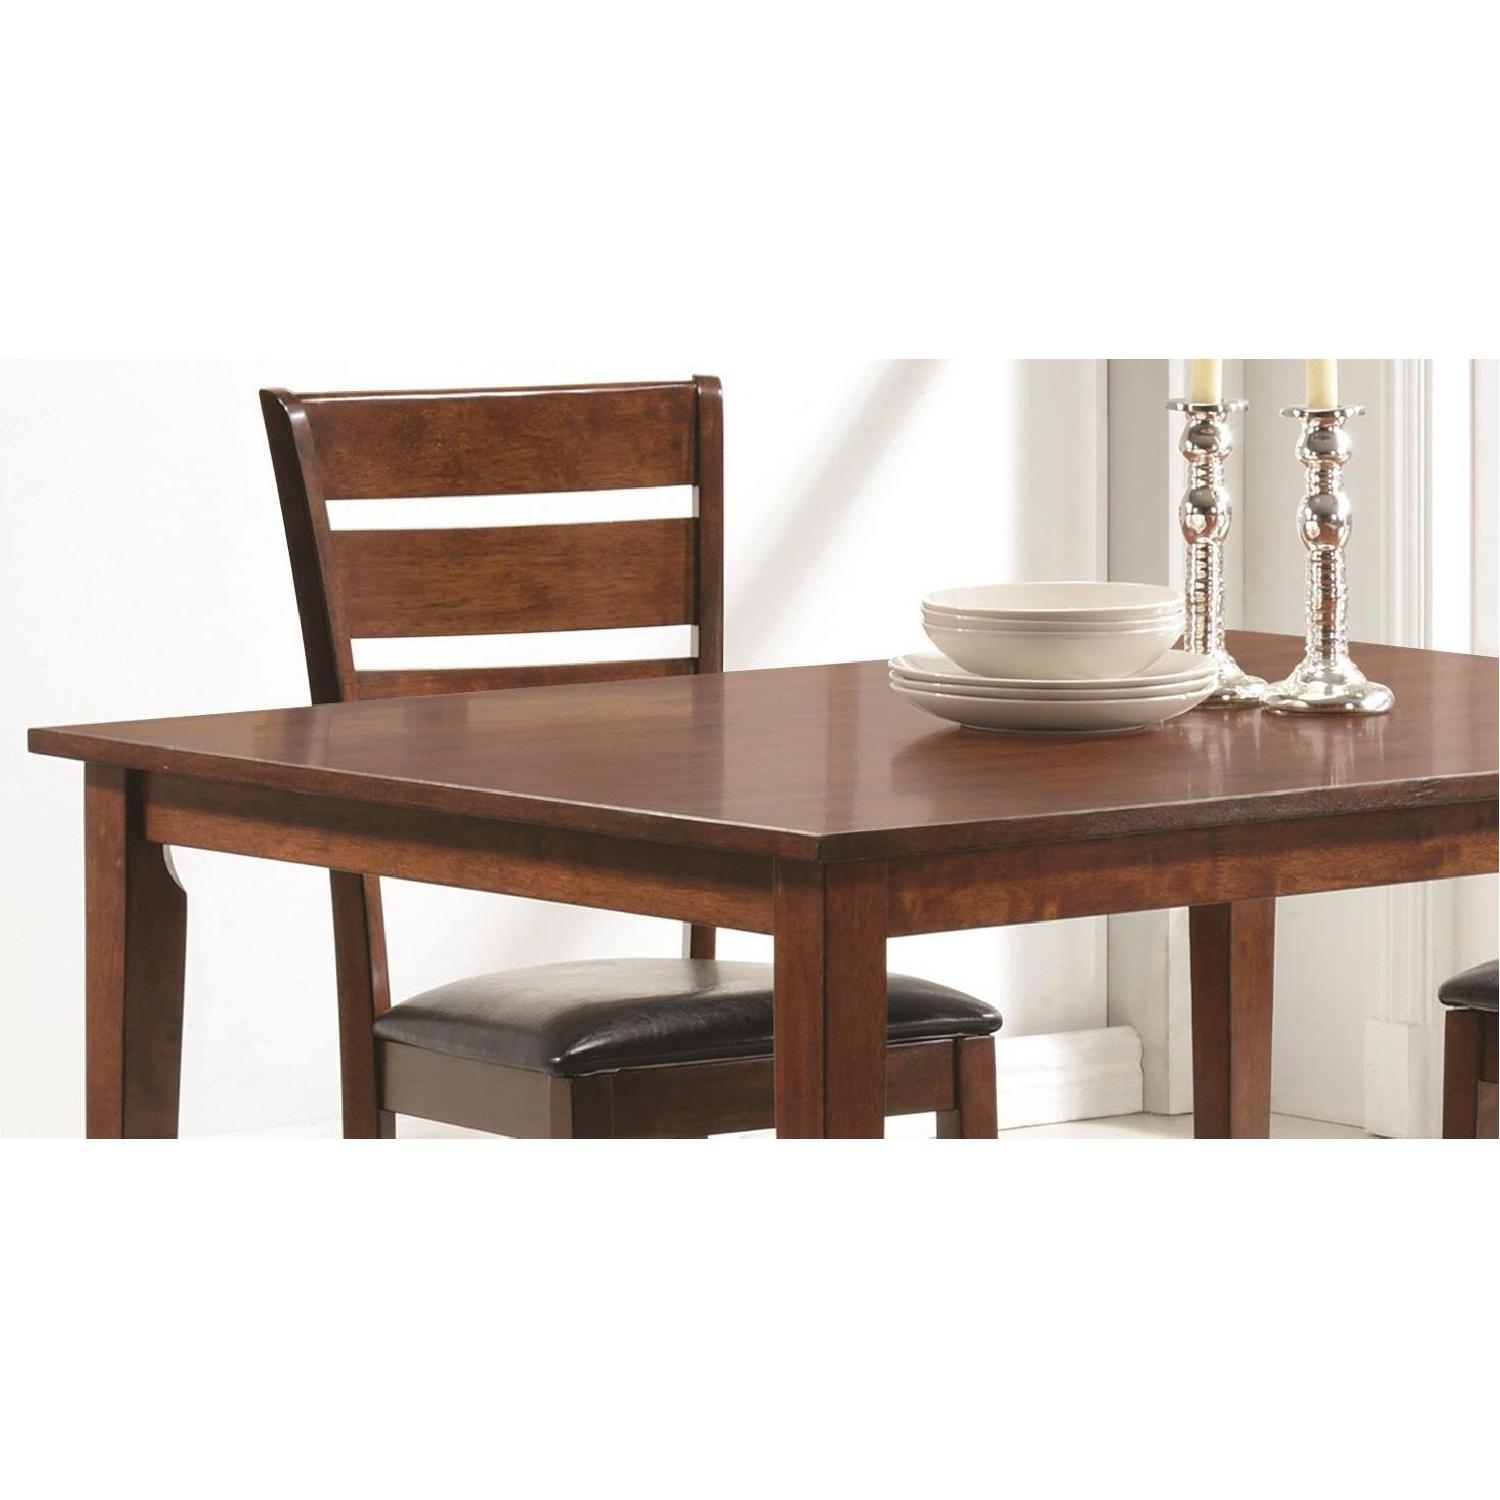 5 Piece Dining Set in Medium Warm Brown Finish - image-2